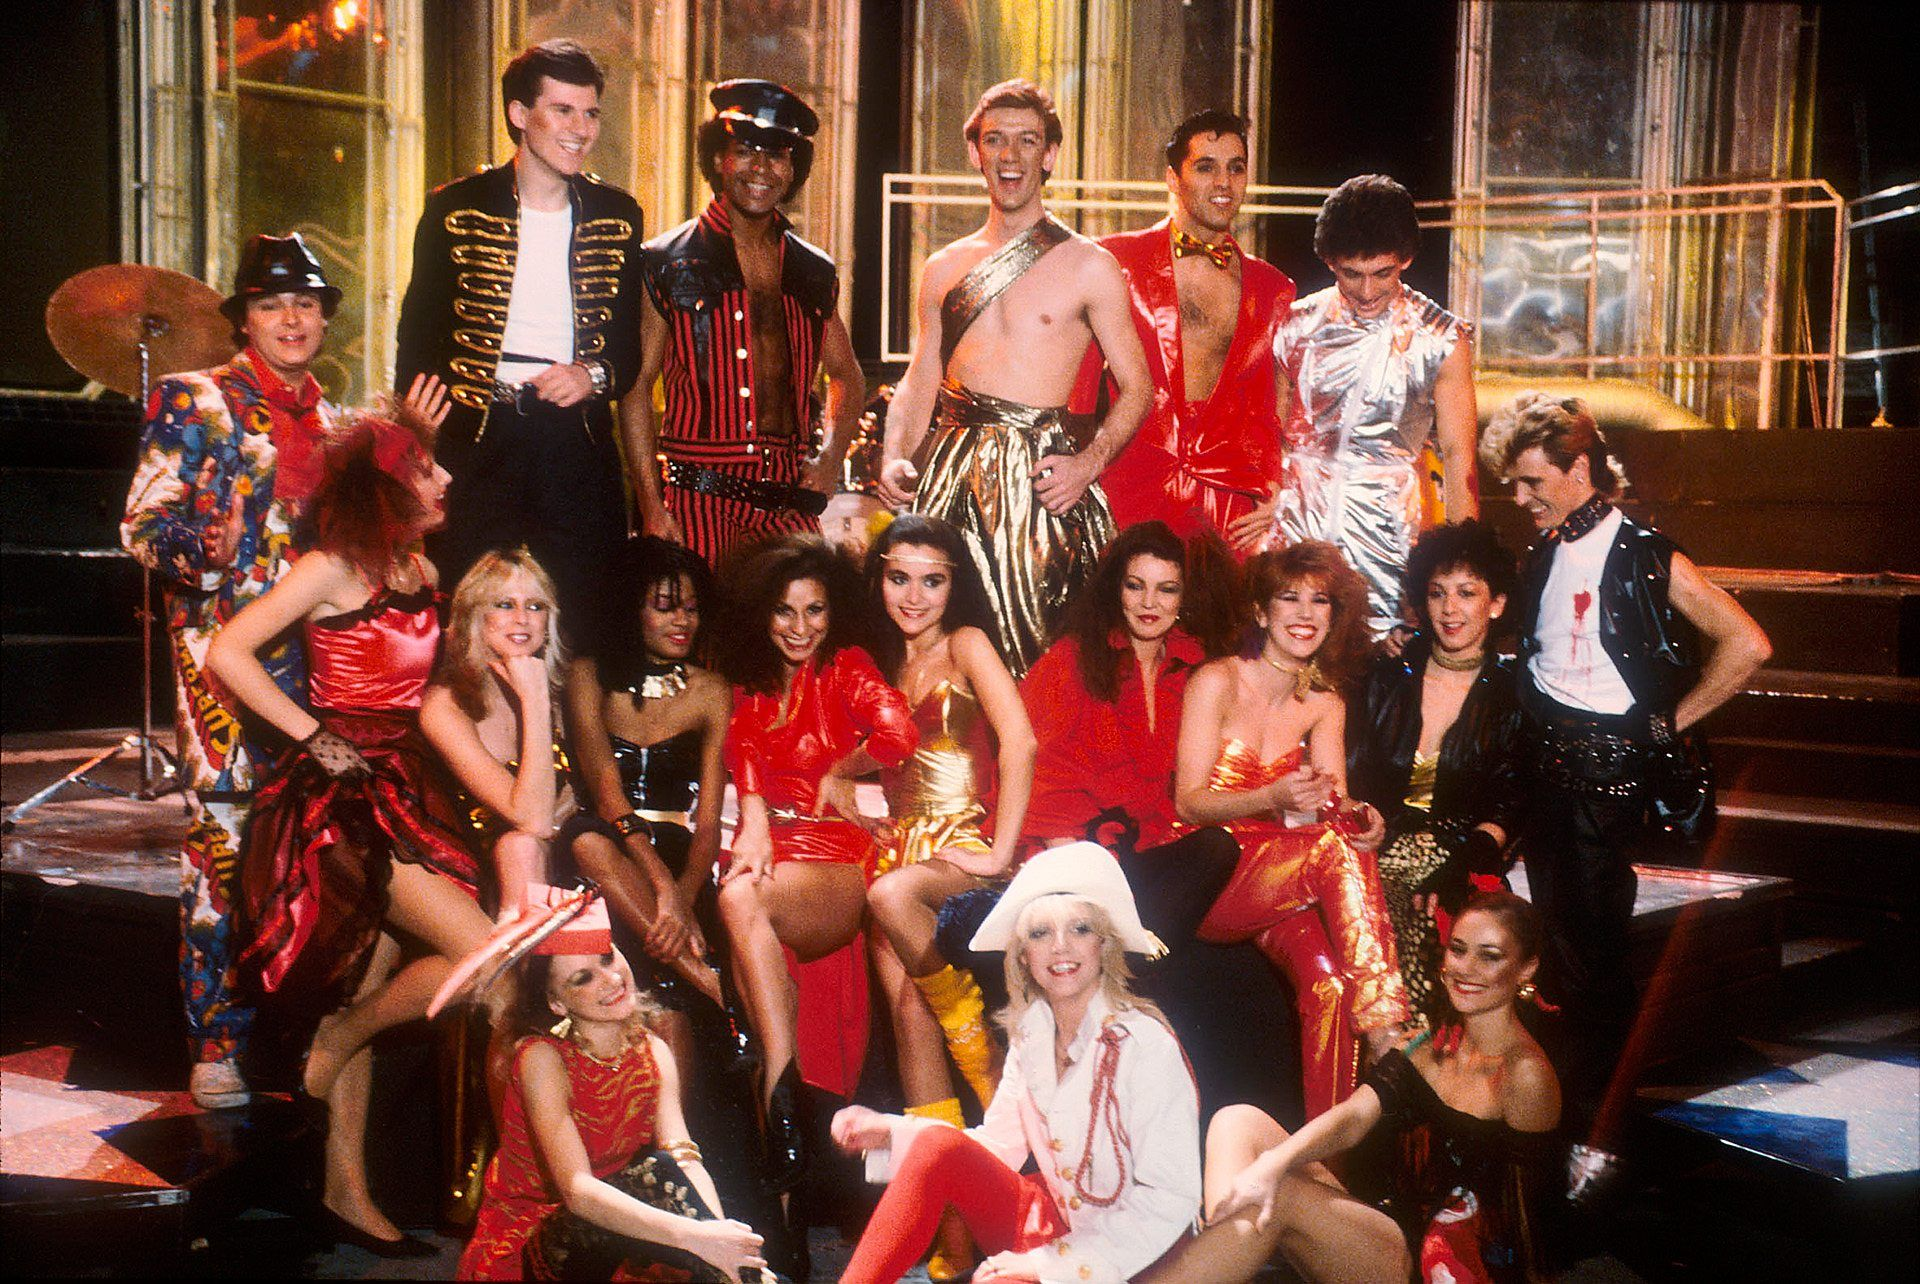 zoo The Best Of 1980s Music In Pictures: Part Two